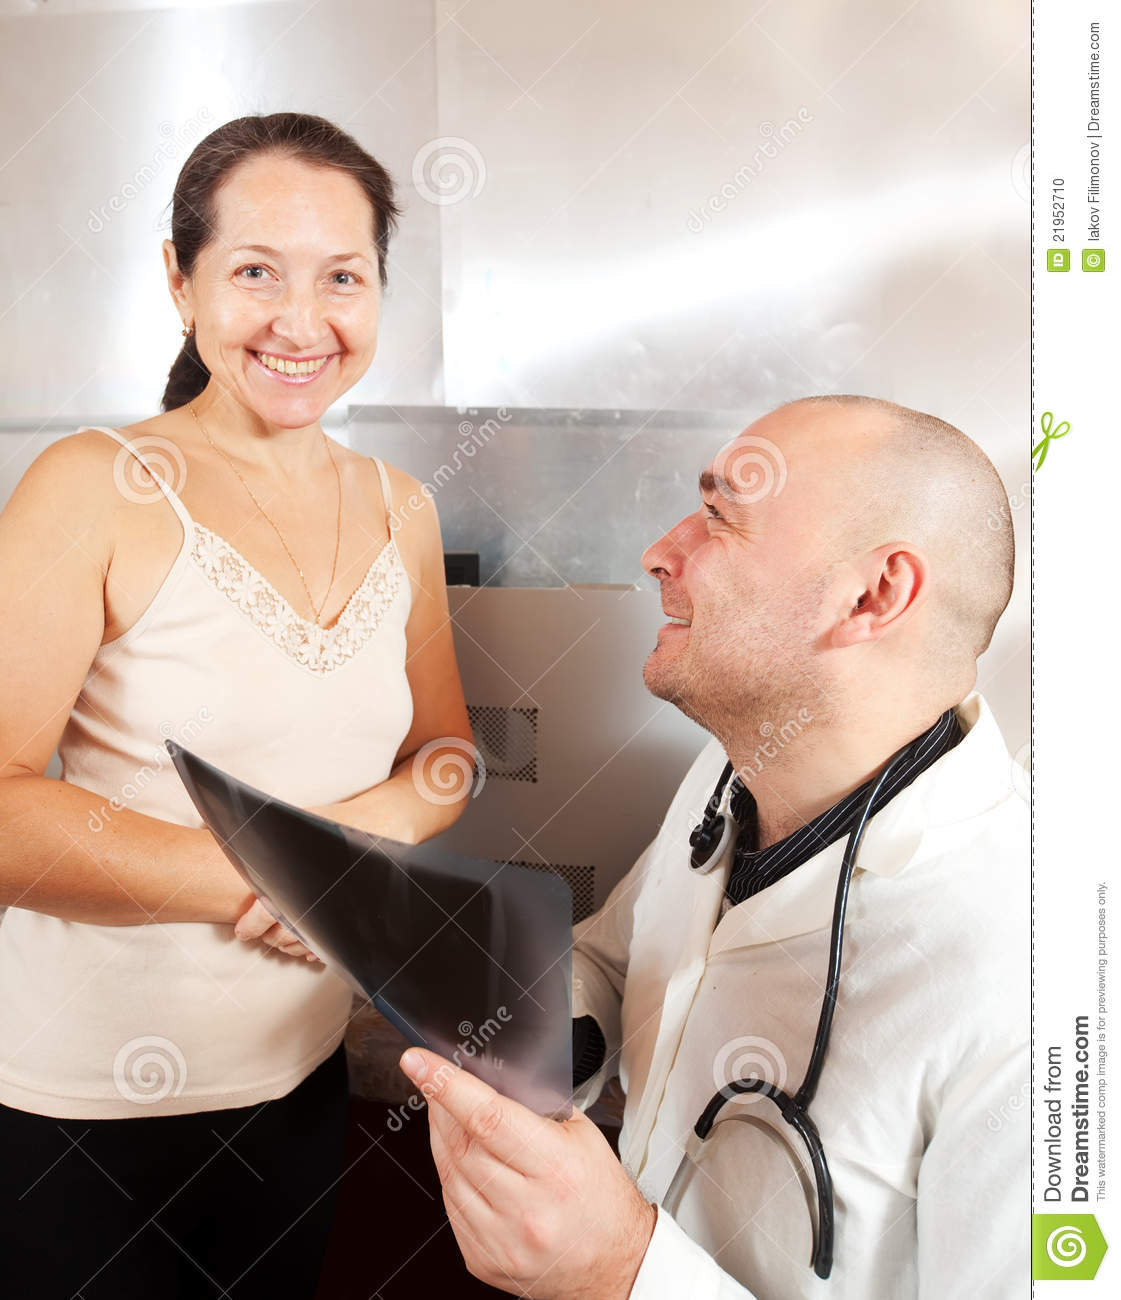 Male Doctor Examining The Patient Stock Photo - Image -8532